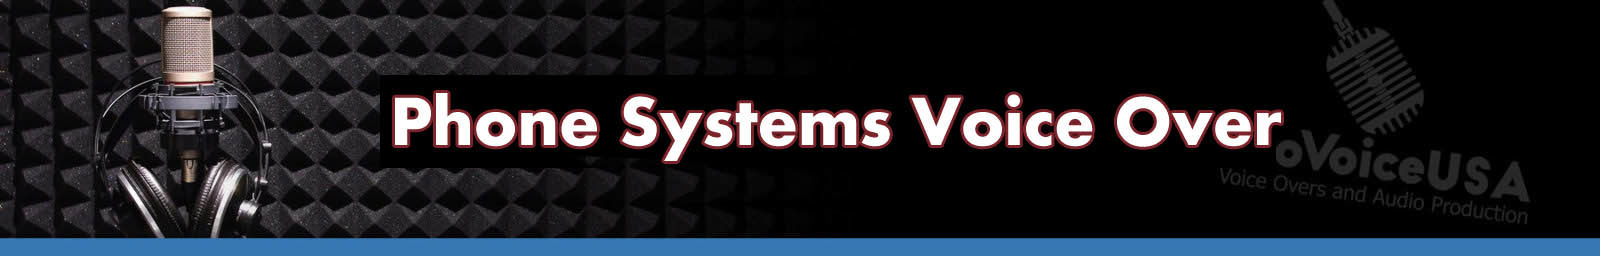 Phone Systems Voice Over Header